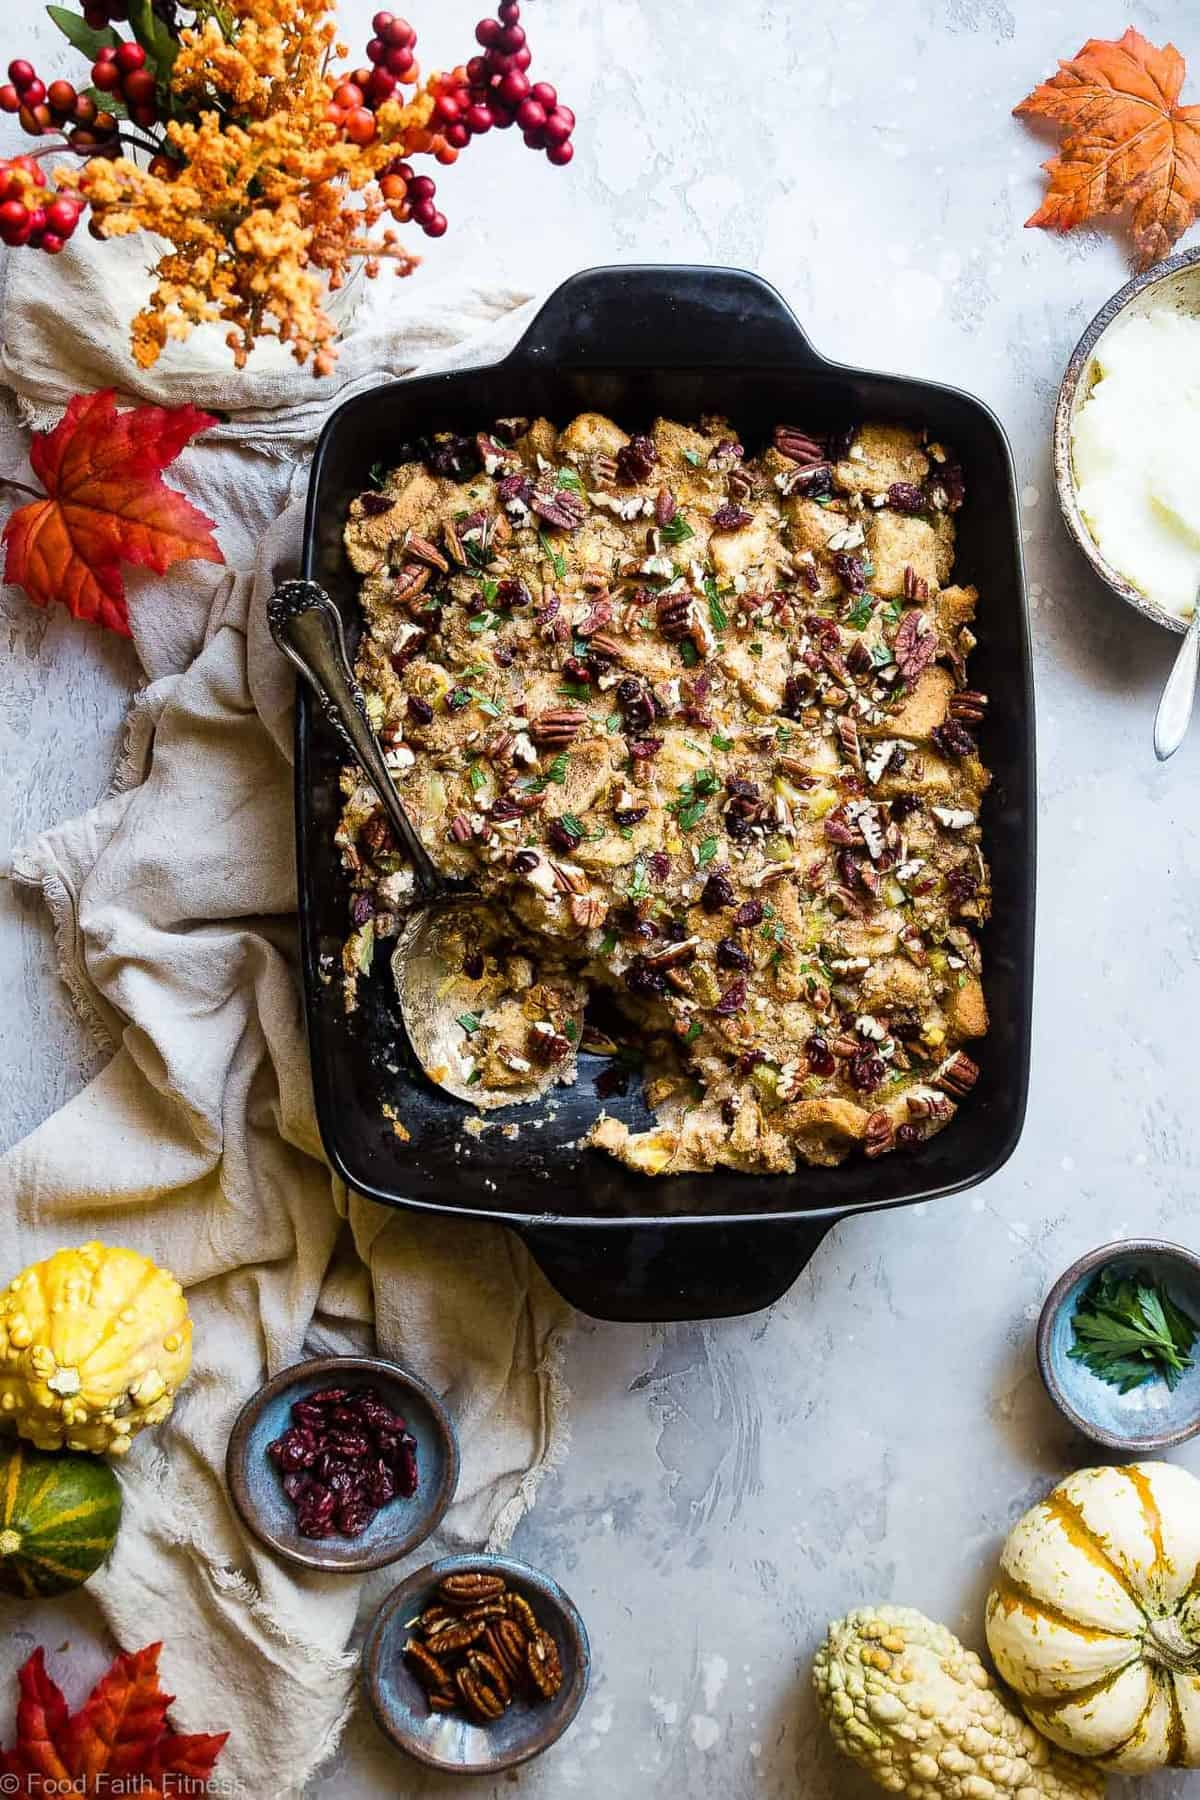 Harvest Gluten Free Vegan Stuffing - This moist Dairy Free Simple Vegan Stuffing Recipe is loaded with fall flavors like pears, oranges, cranberries and cozy cinnamon! Easy, gluten free and SO tasty! | #Foodfaitfitness | #Glutenfree #Vegan #Dairyfree #Healthy #Thanksgiving